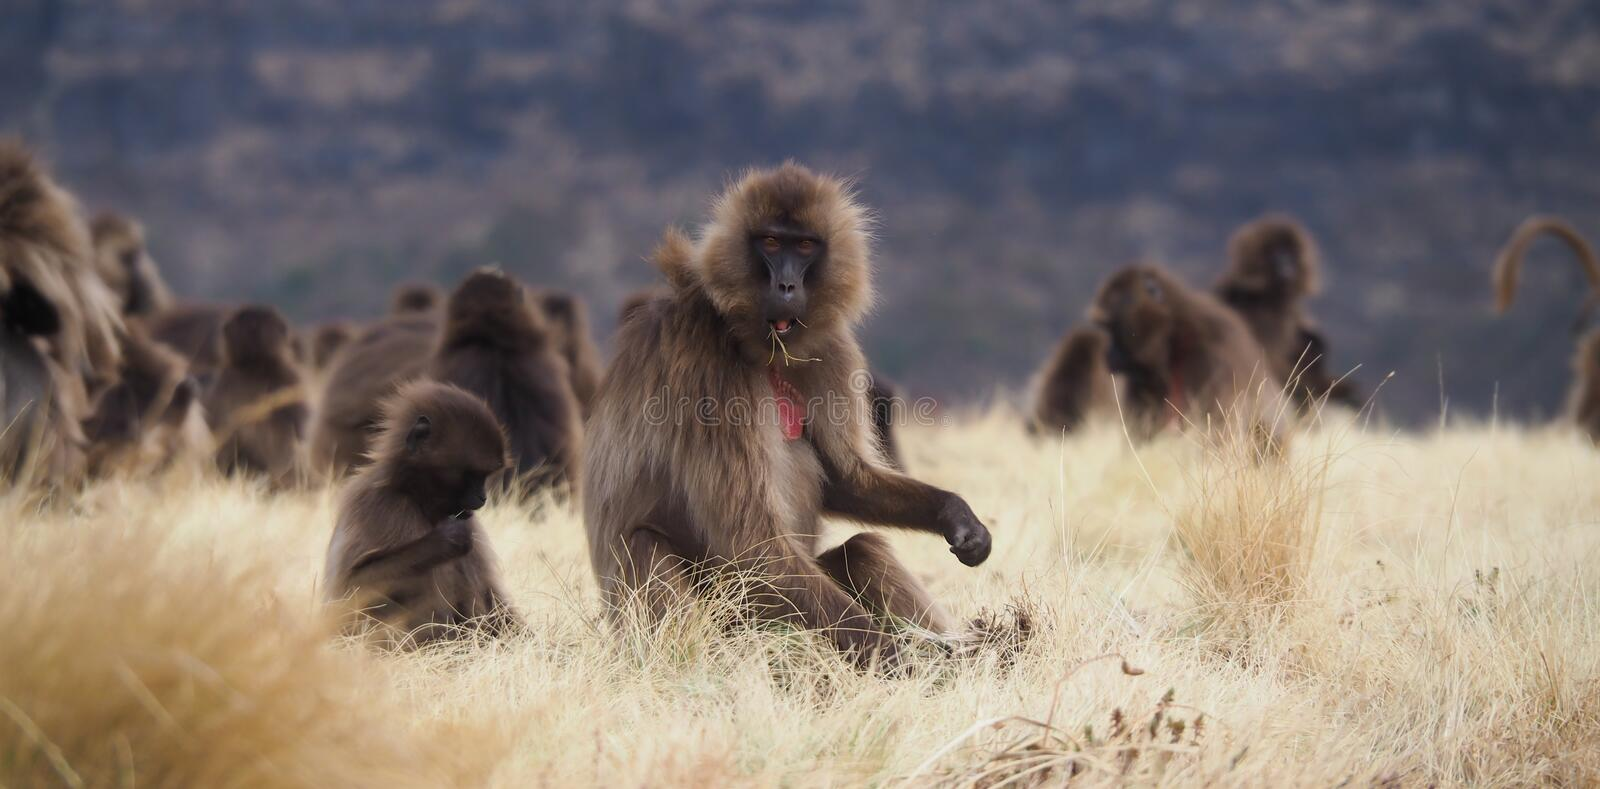 Group of Gelada baboons feeding, Theropithecus gelada, in Ethiopia. Family unit of Gelada baboons, Theropithecus gelada, in Semien Mountains, Ethiopia royalty free stock image